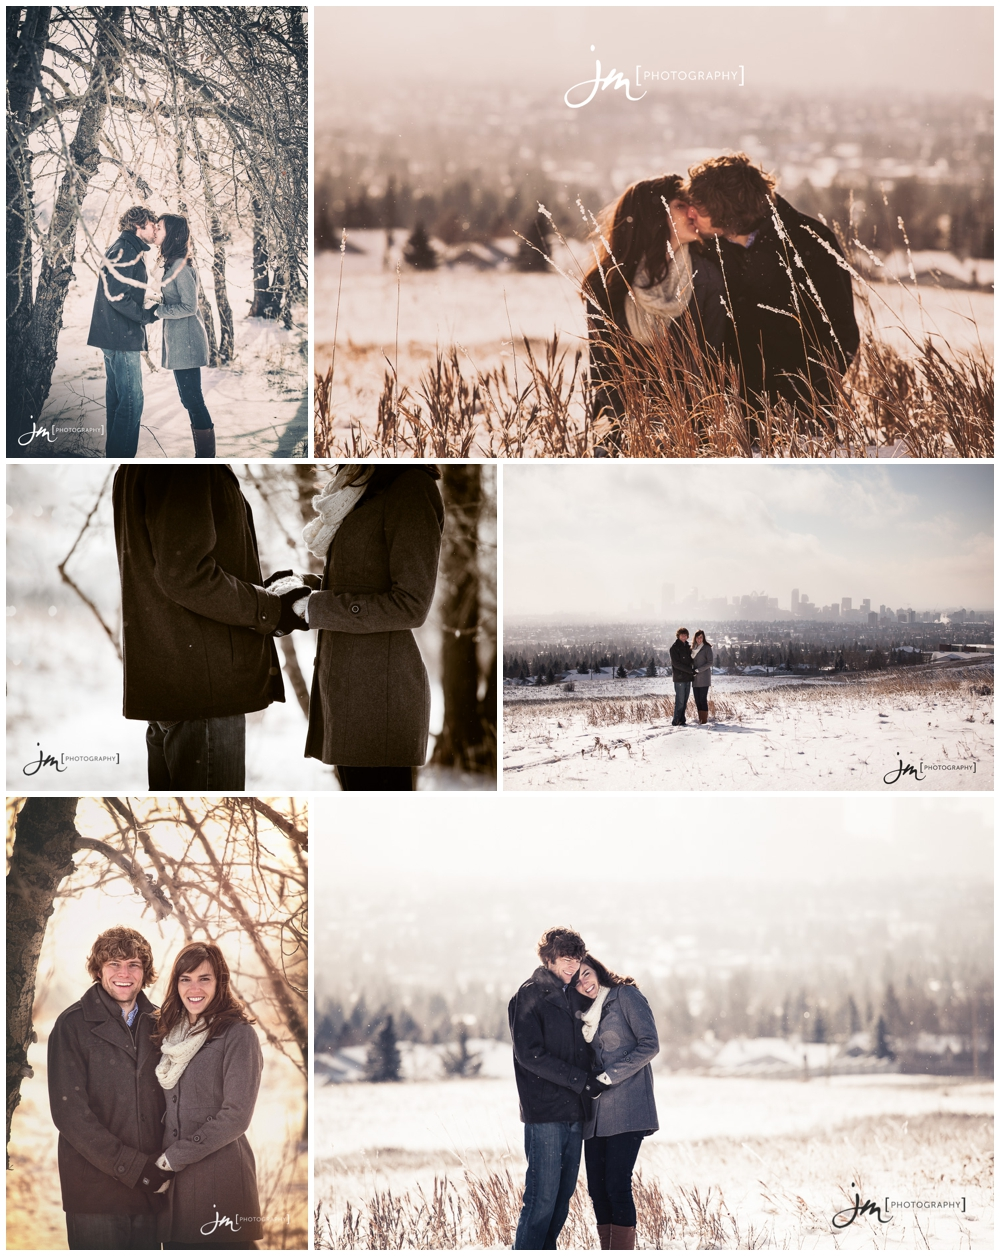 150226_033-Engagement-Photos-Calgary-JM_Photography-Jeremy-Martel-Nose-Hill